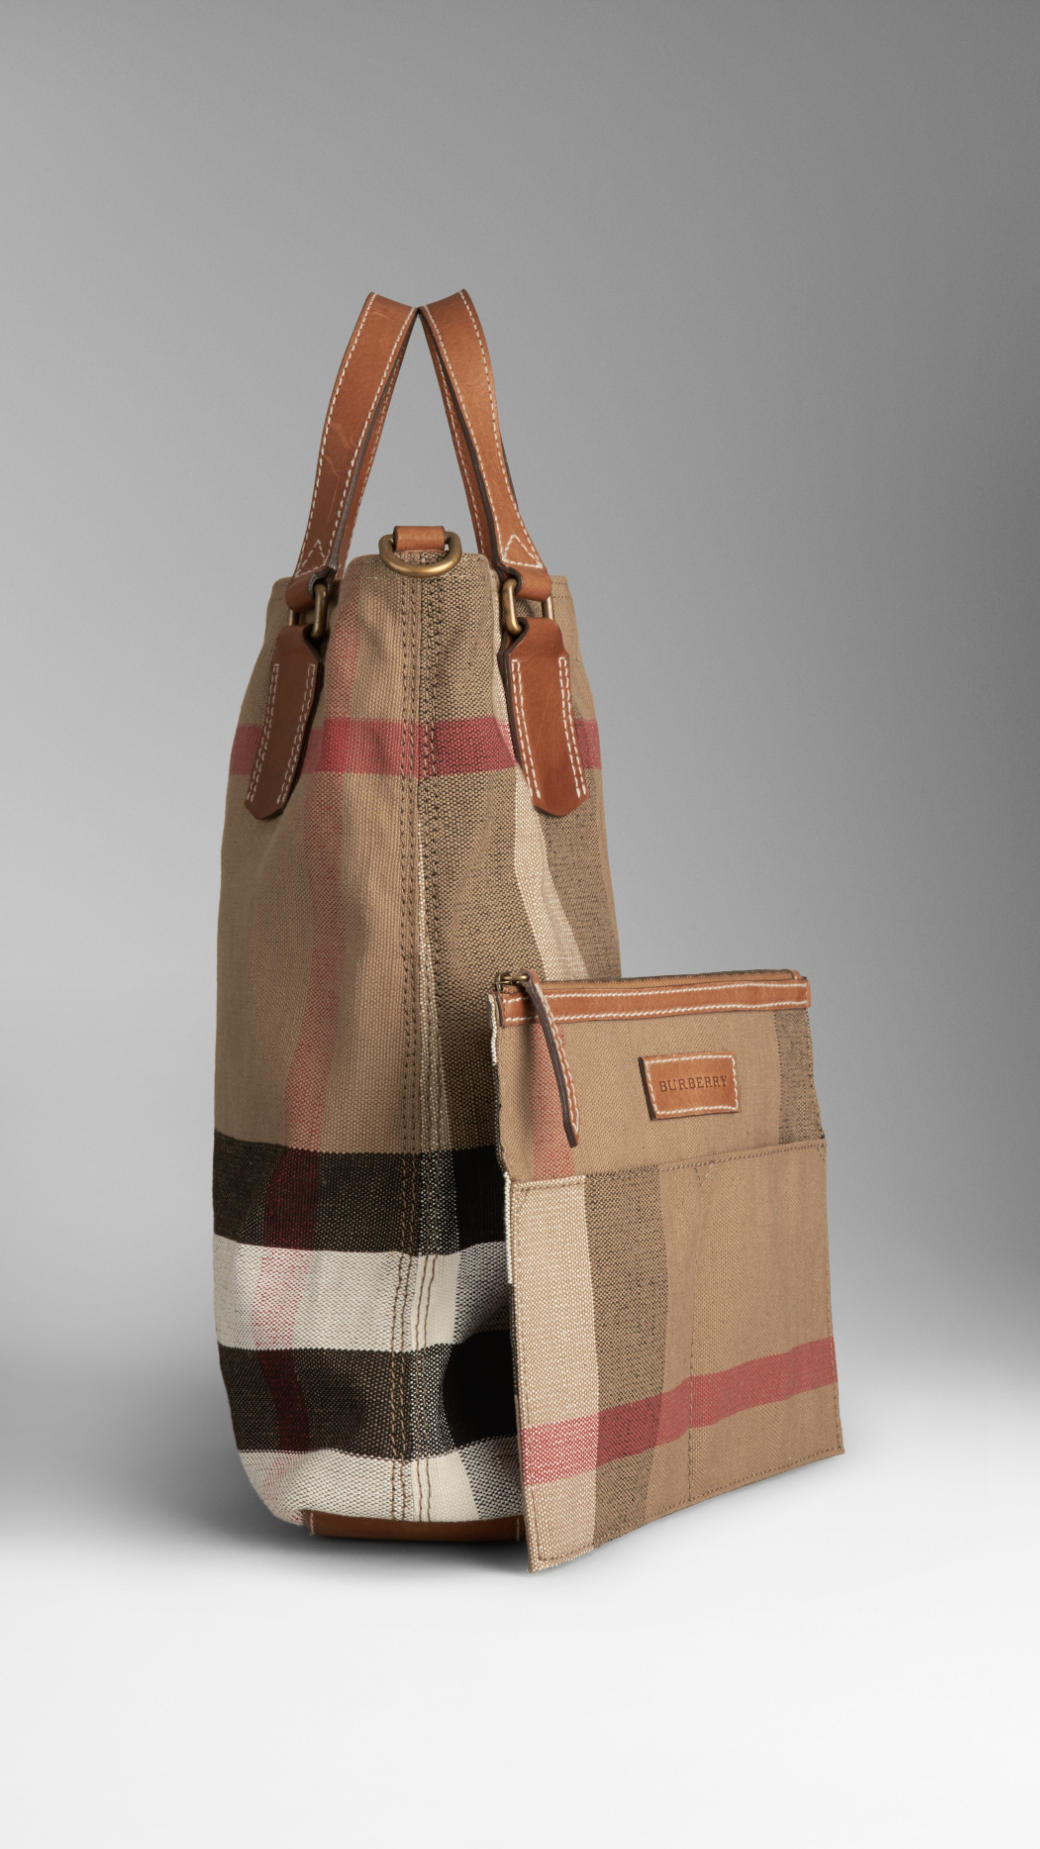 89922b09cdf Lyst - Burberry Medium Canvas Check Tote Bag in Brown